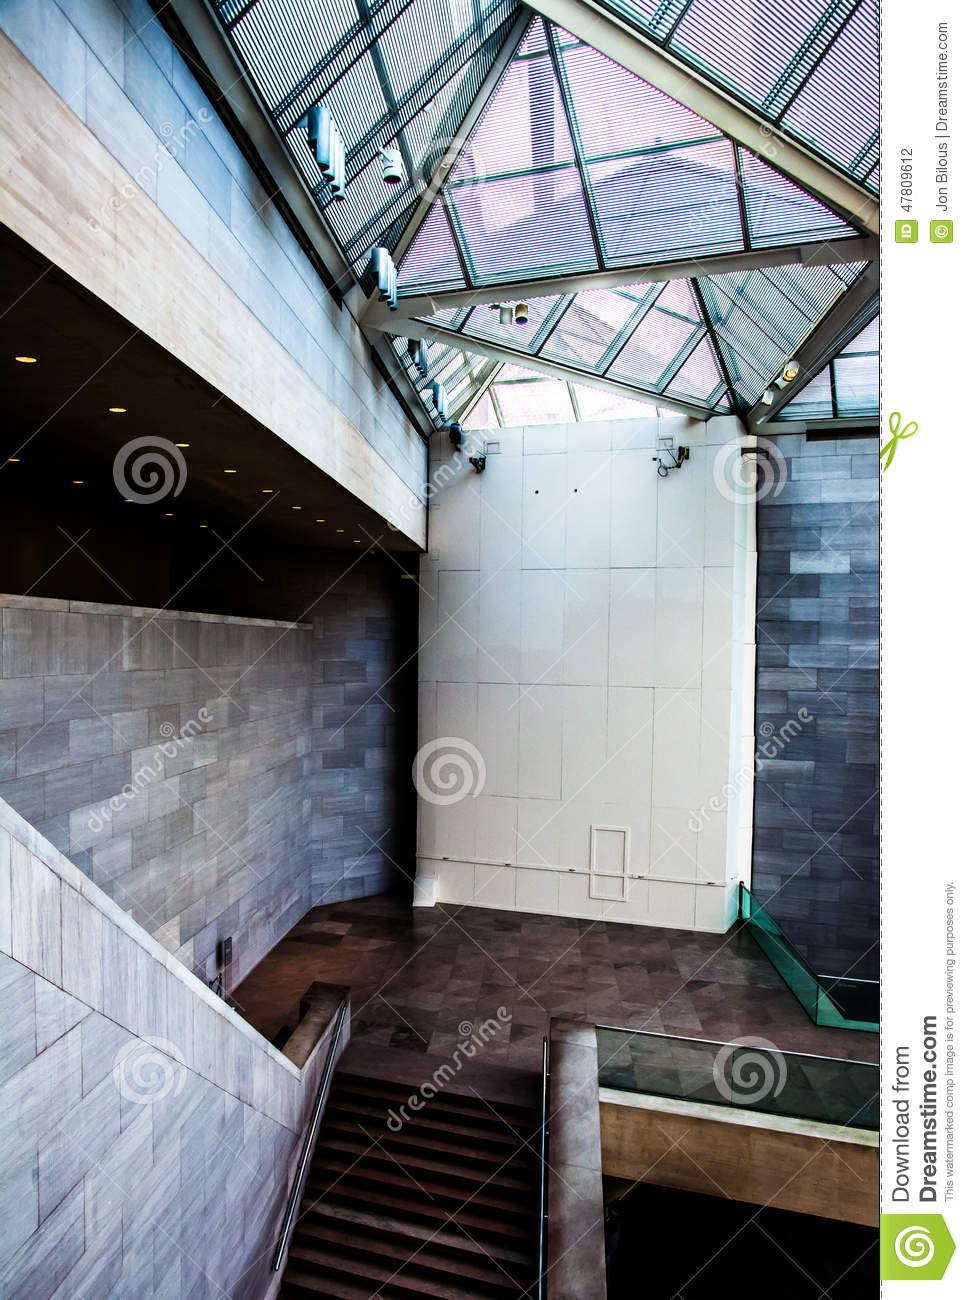 Staircase And Modern Architecture Inside The East Building Of Th